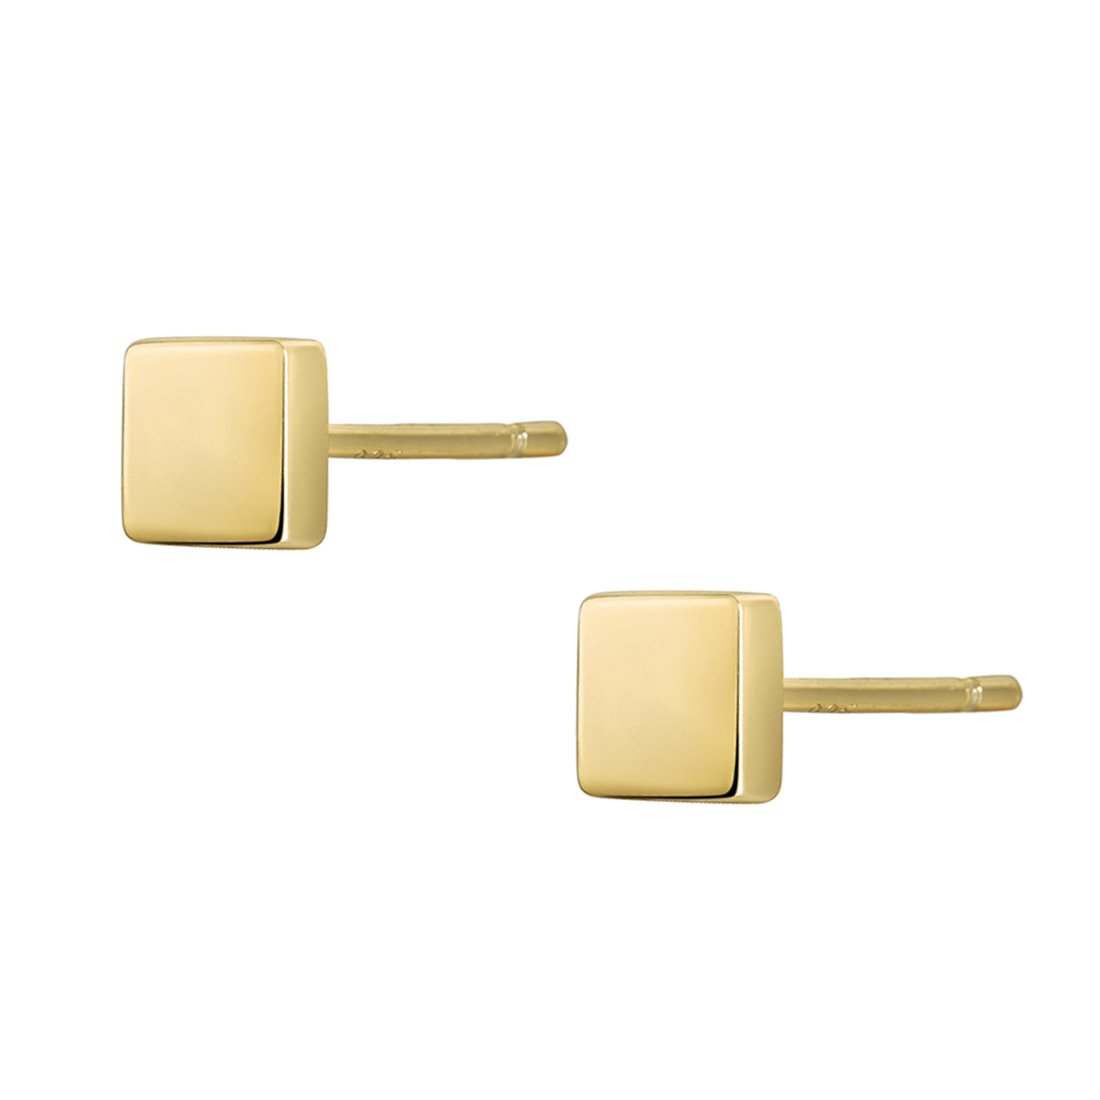 S.Leaf Minimalism Dainty Stud Earrings Sterling Silver Mini Ball,Square Stud Earrings Everyday Wear (Square-Gold)